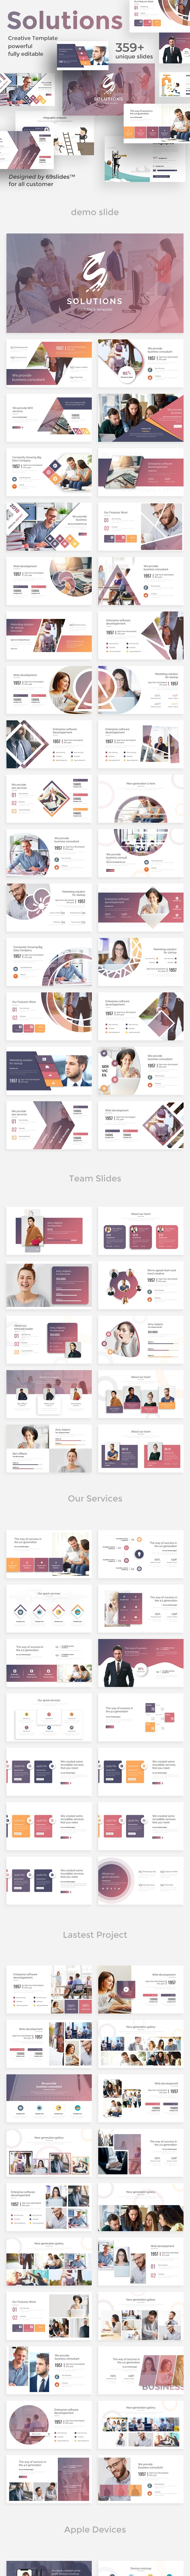 Solutions Fully Animated Pitch Deck Powerpoint Template - Business PowerPoint Templates